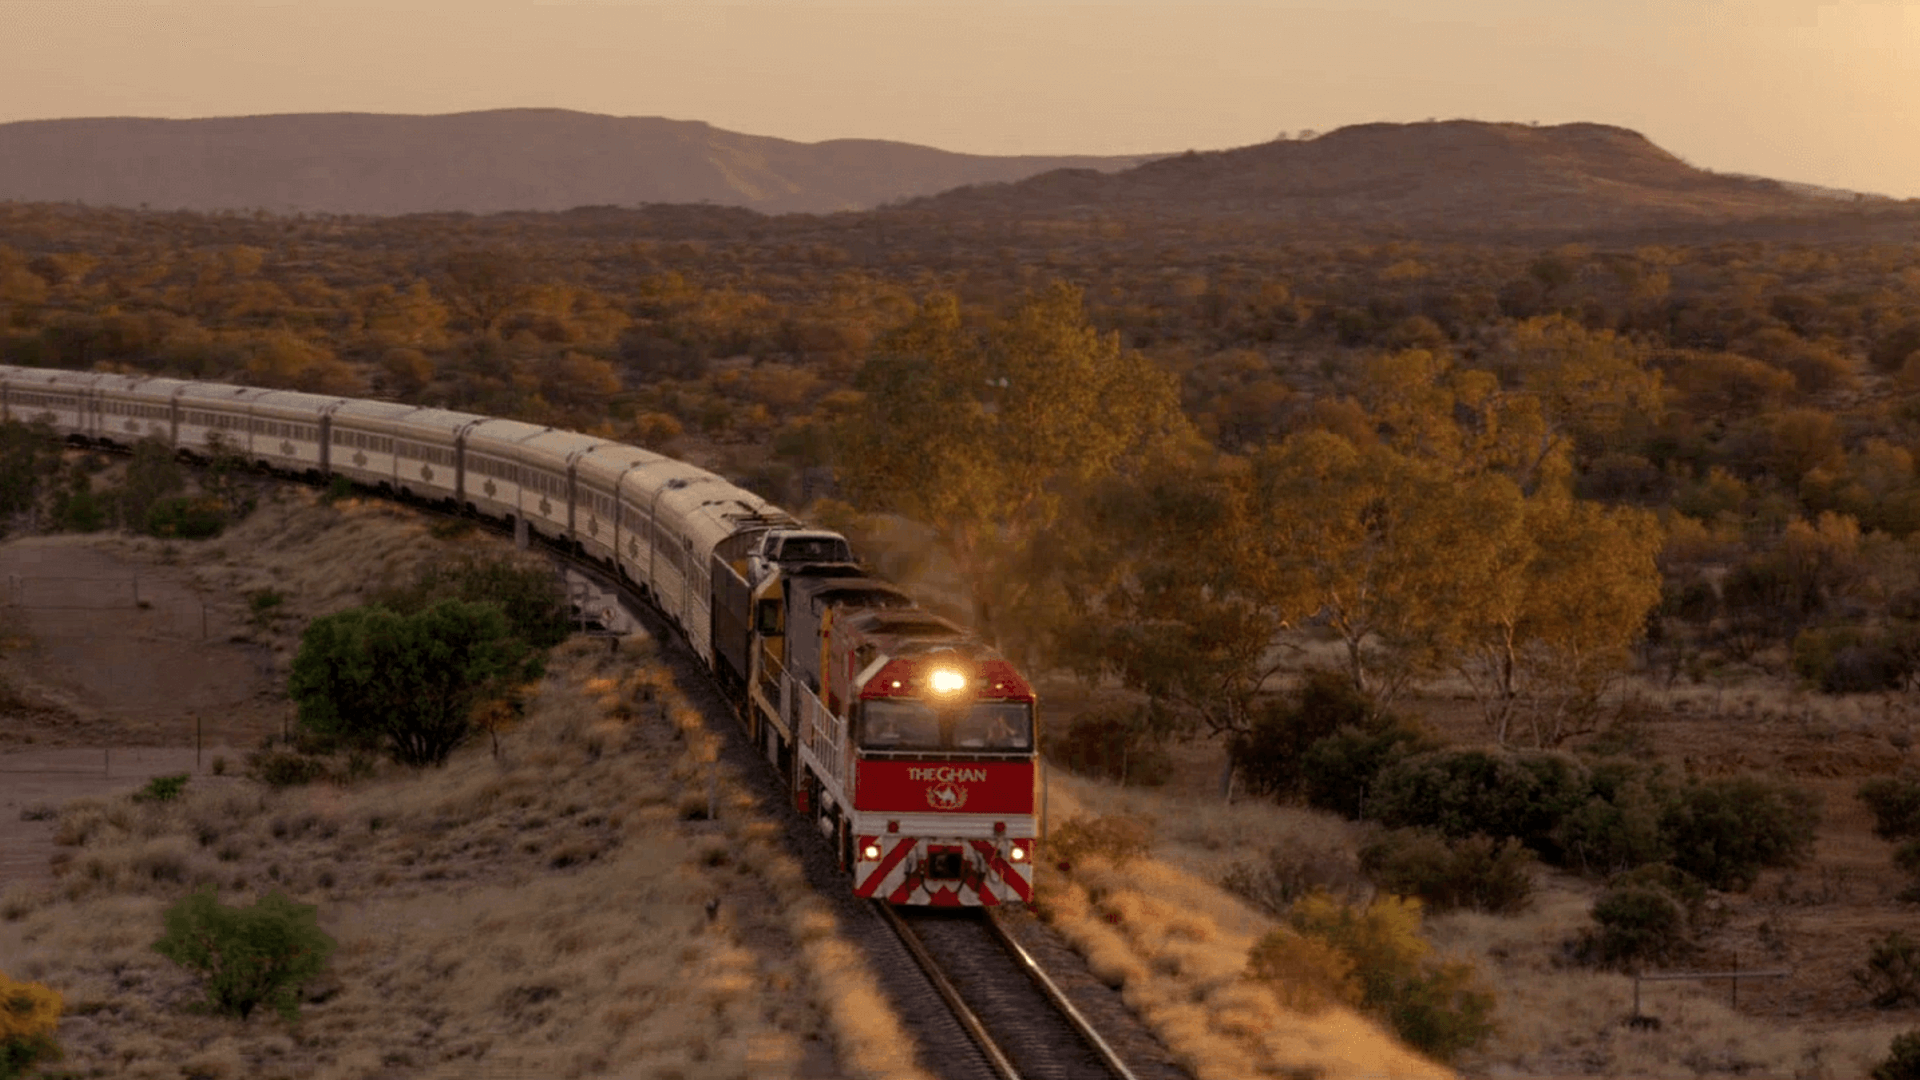 3 journey beyond the ghan indian pacific2 %e3%81%ae%e3%82%b3%e3%83%94%e3%83%bc